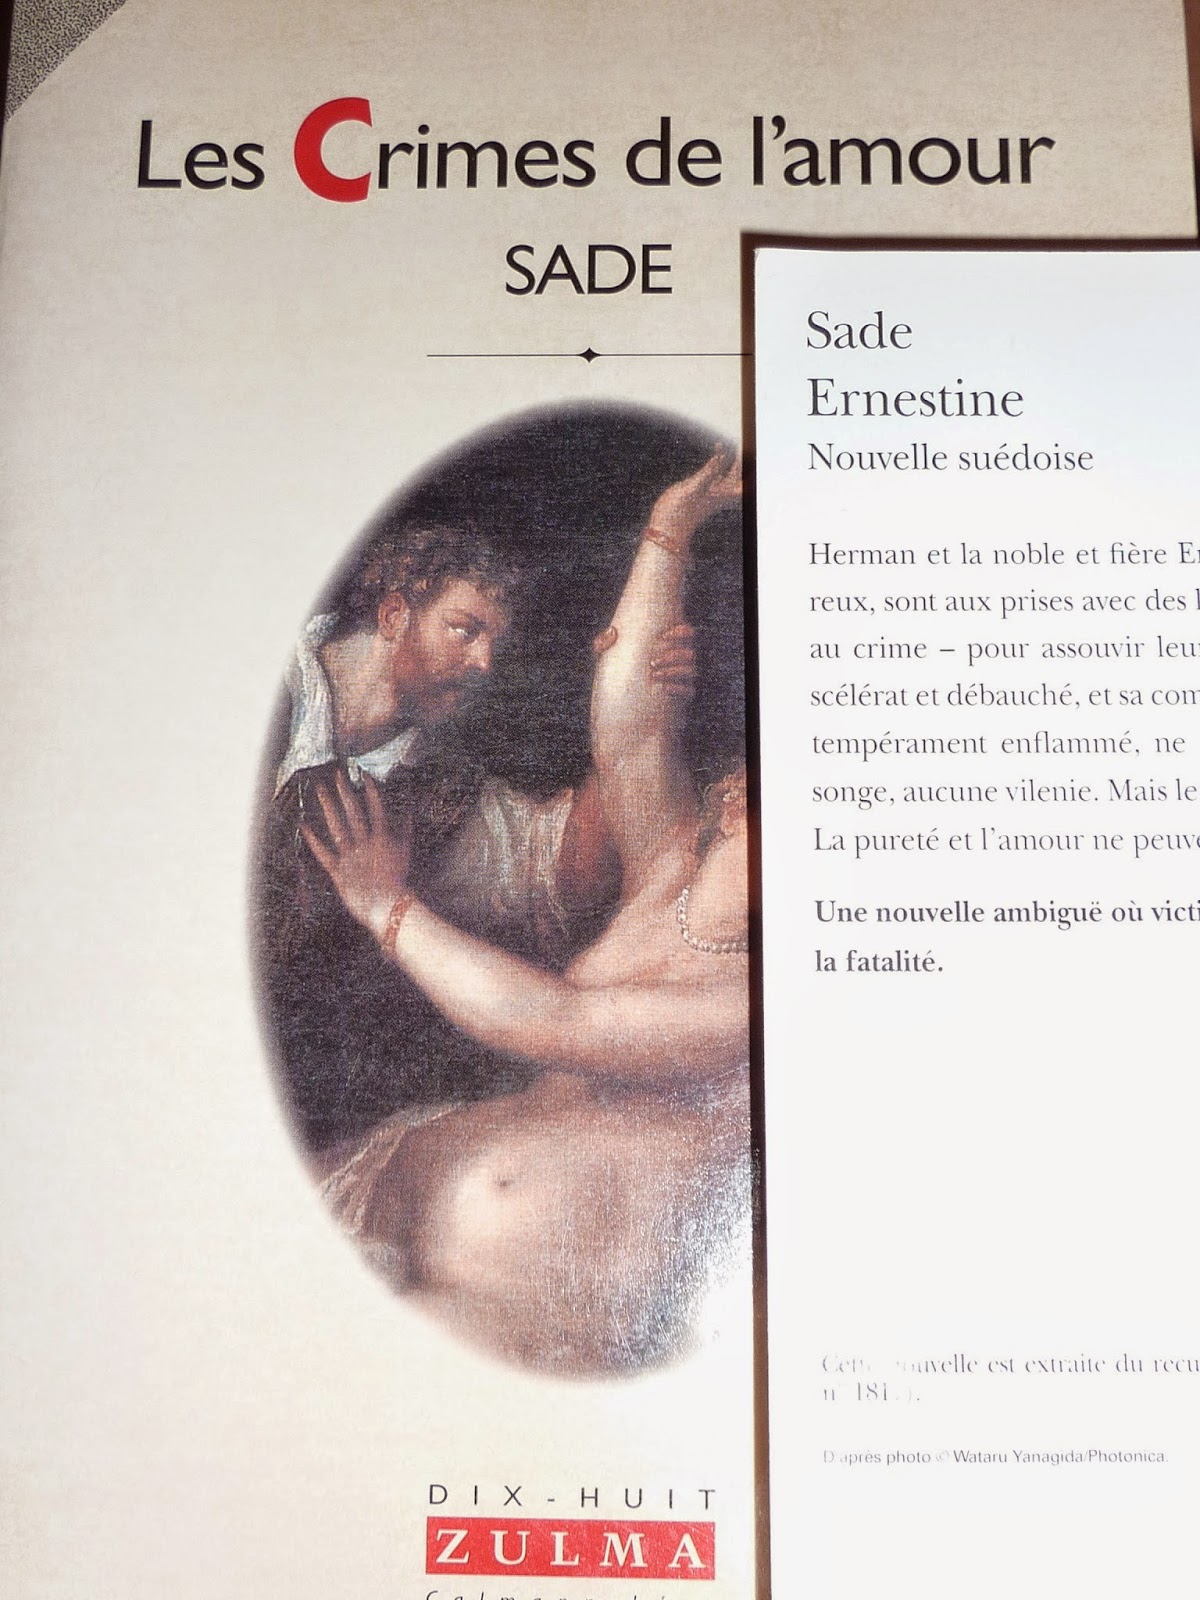 Les crimes de l'amour - Sade